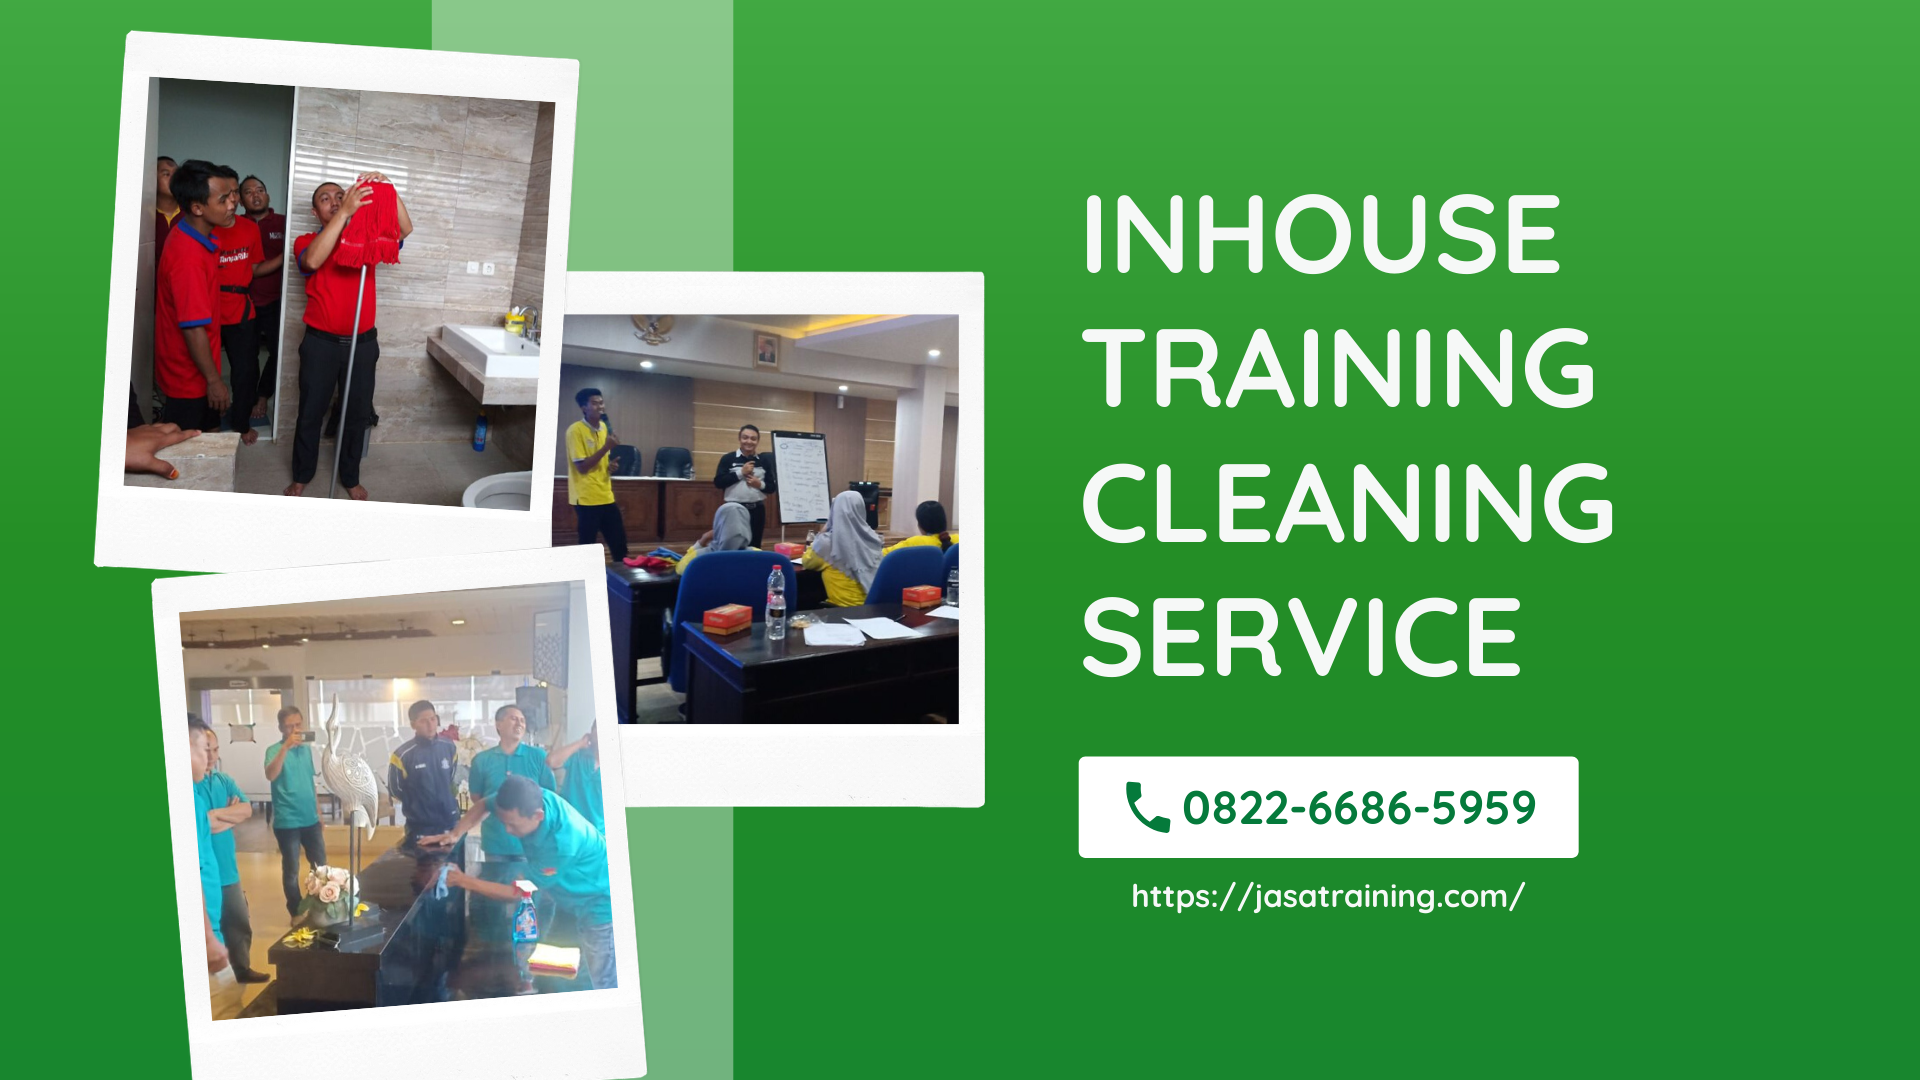 Training Cleaning Service